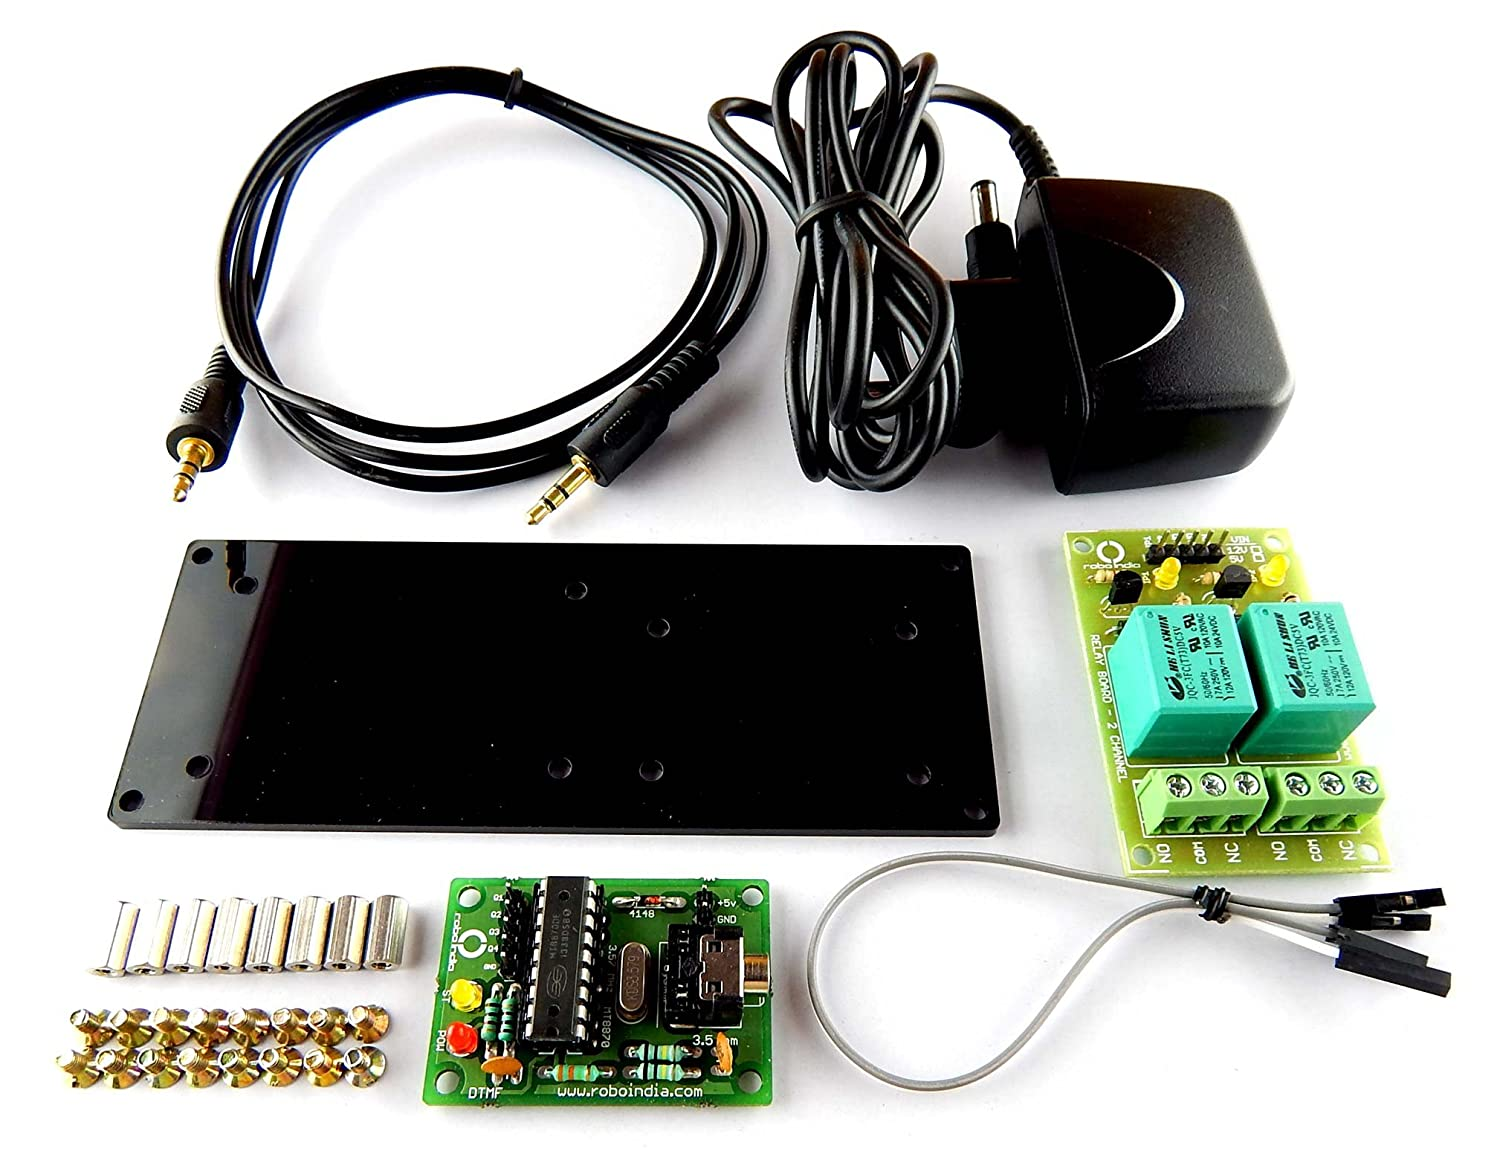 Robo India Dtmfk 02 Simple Dtmf Home And Industry Automation Kit 2 Based Remote Control System Devices Mobile Phone Industrial